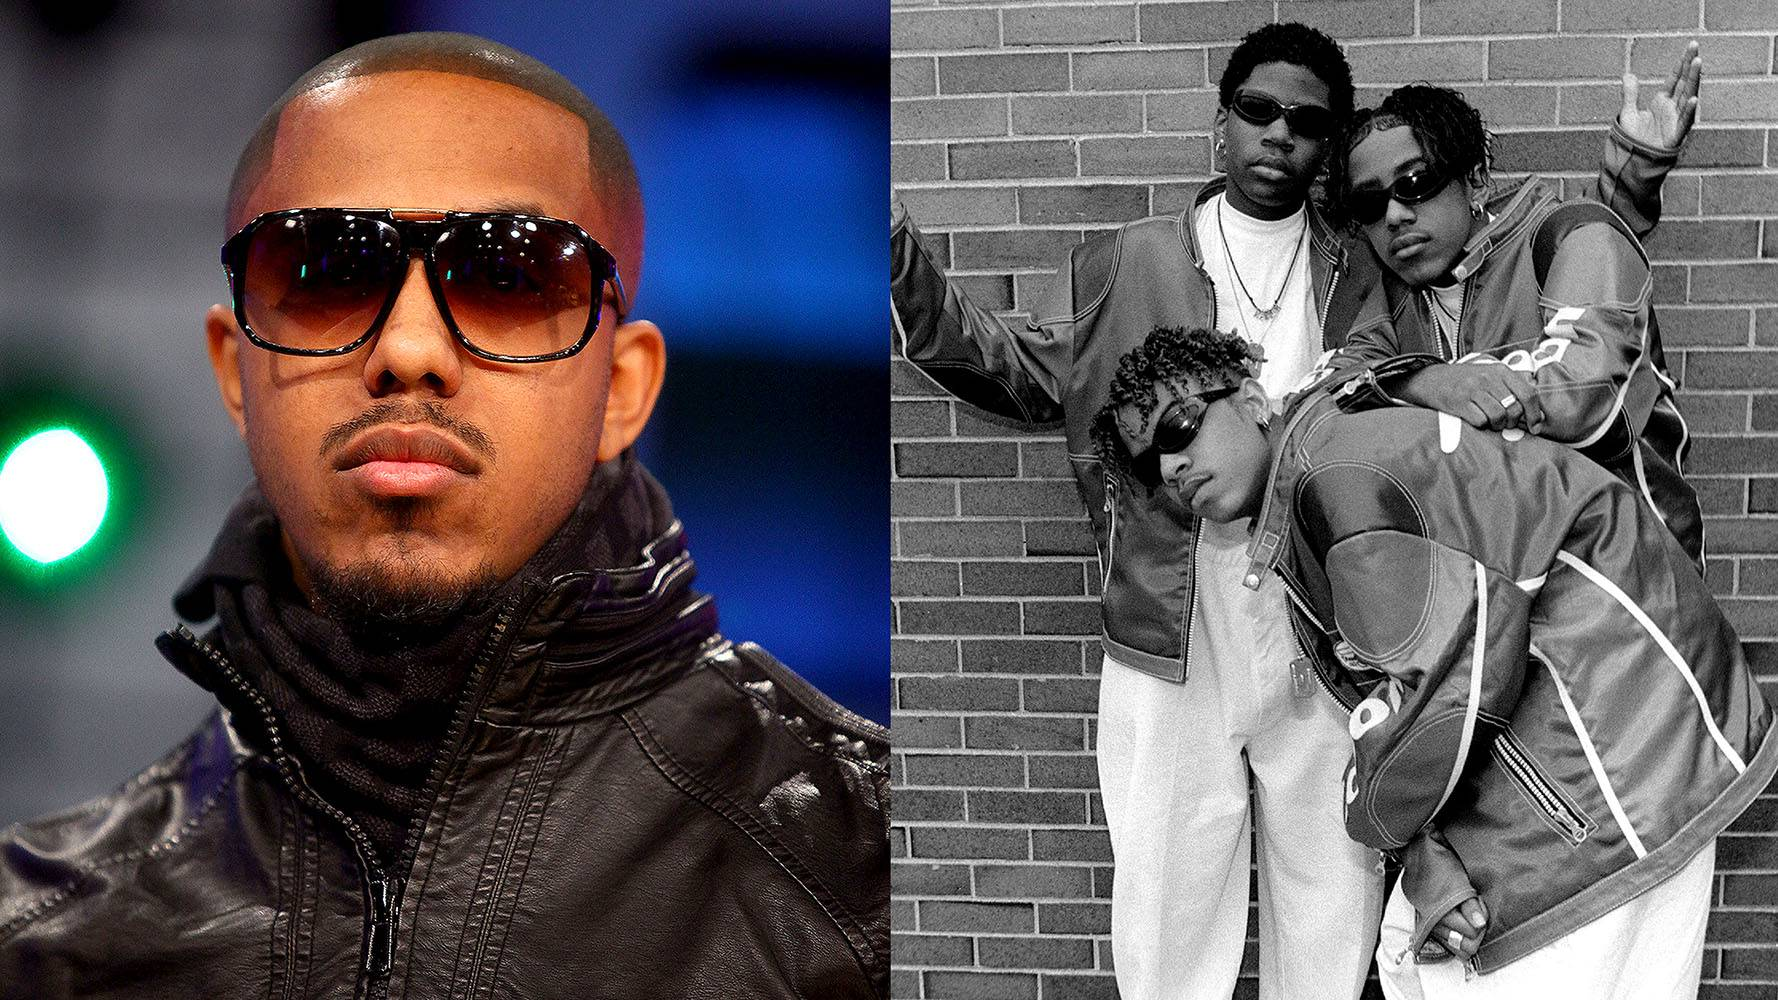 Marques Houston | Immature  - Marques Houston has made quite a name for himself, from acting to singing. He started off with the R&B groupImmature.And they didn't just stick to music, they had some dope roles in movies, too. (Photos from Left: Astrid Stawiarz/Getty Images, Raymond Boyd/Michael Ochs Archives/Getty Images)